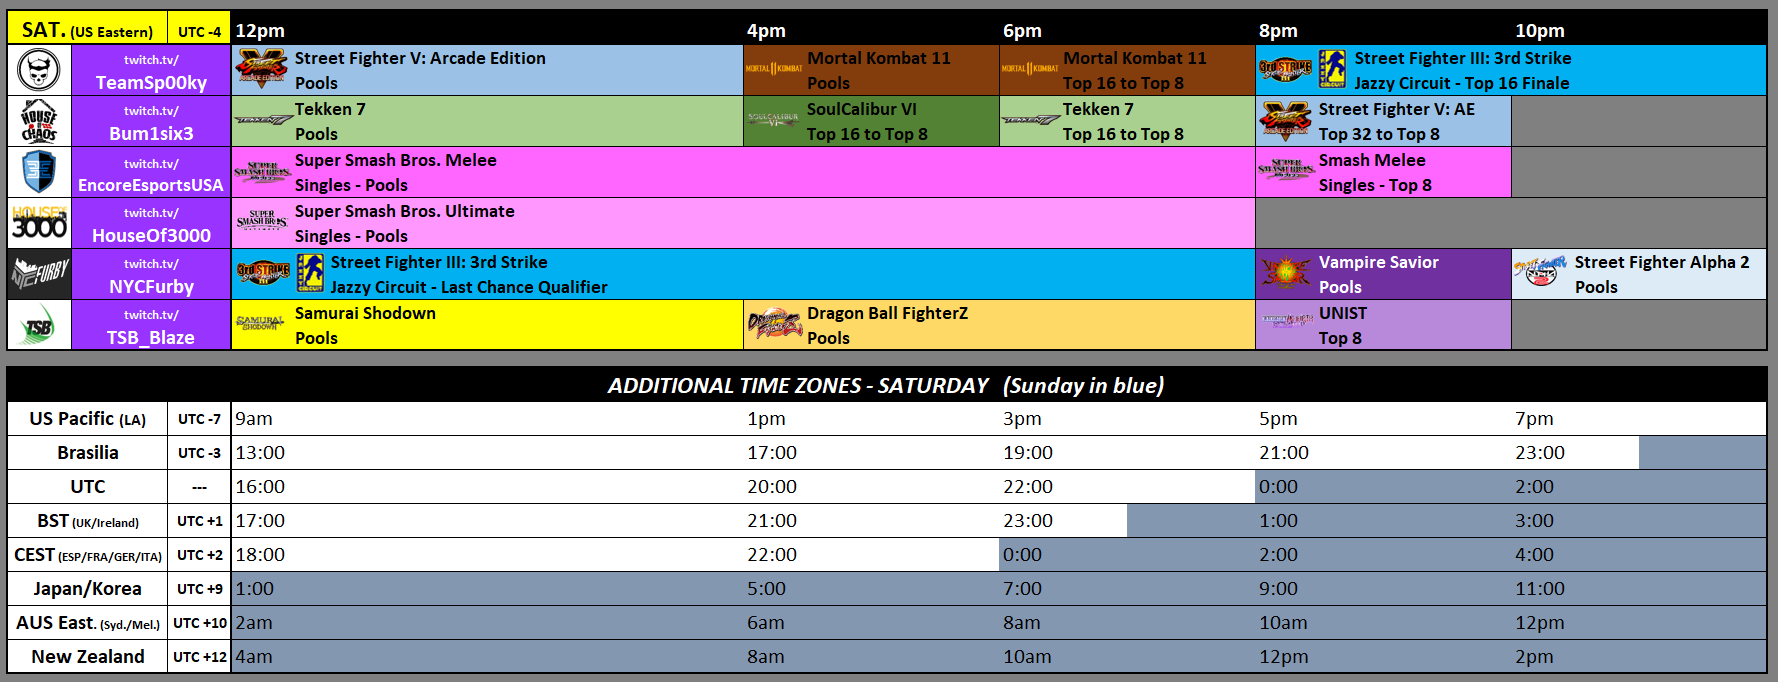 Defend the North 2019 Event Schedule 2 out of 3 image gallery